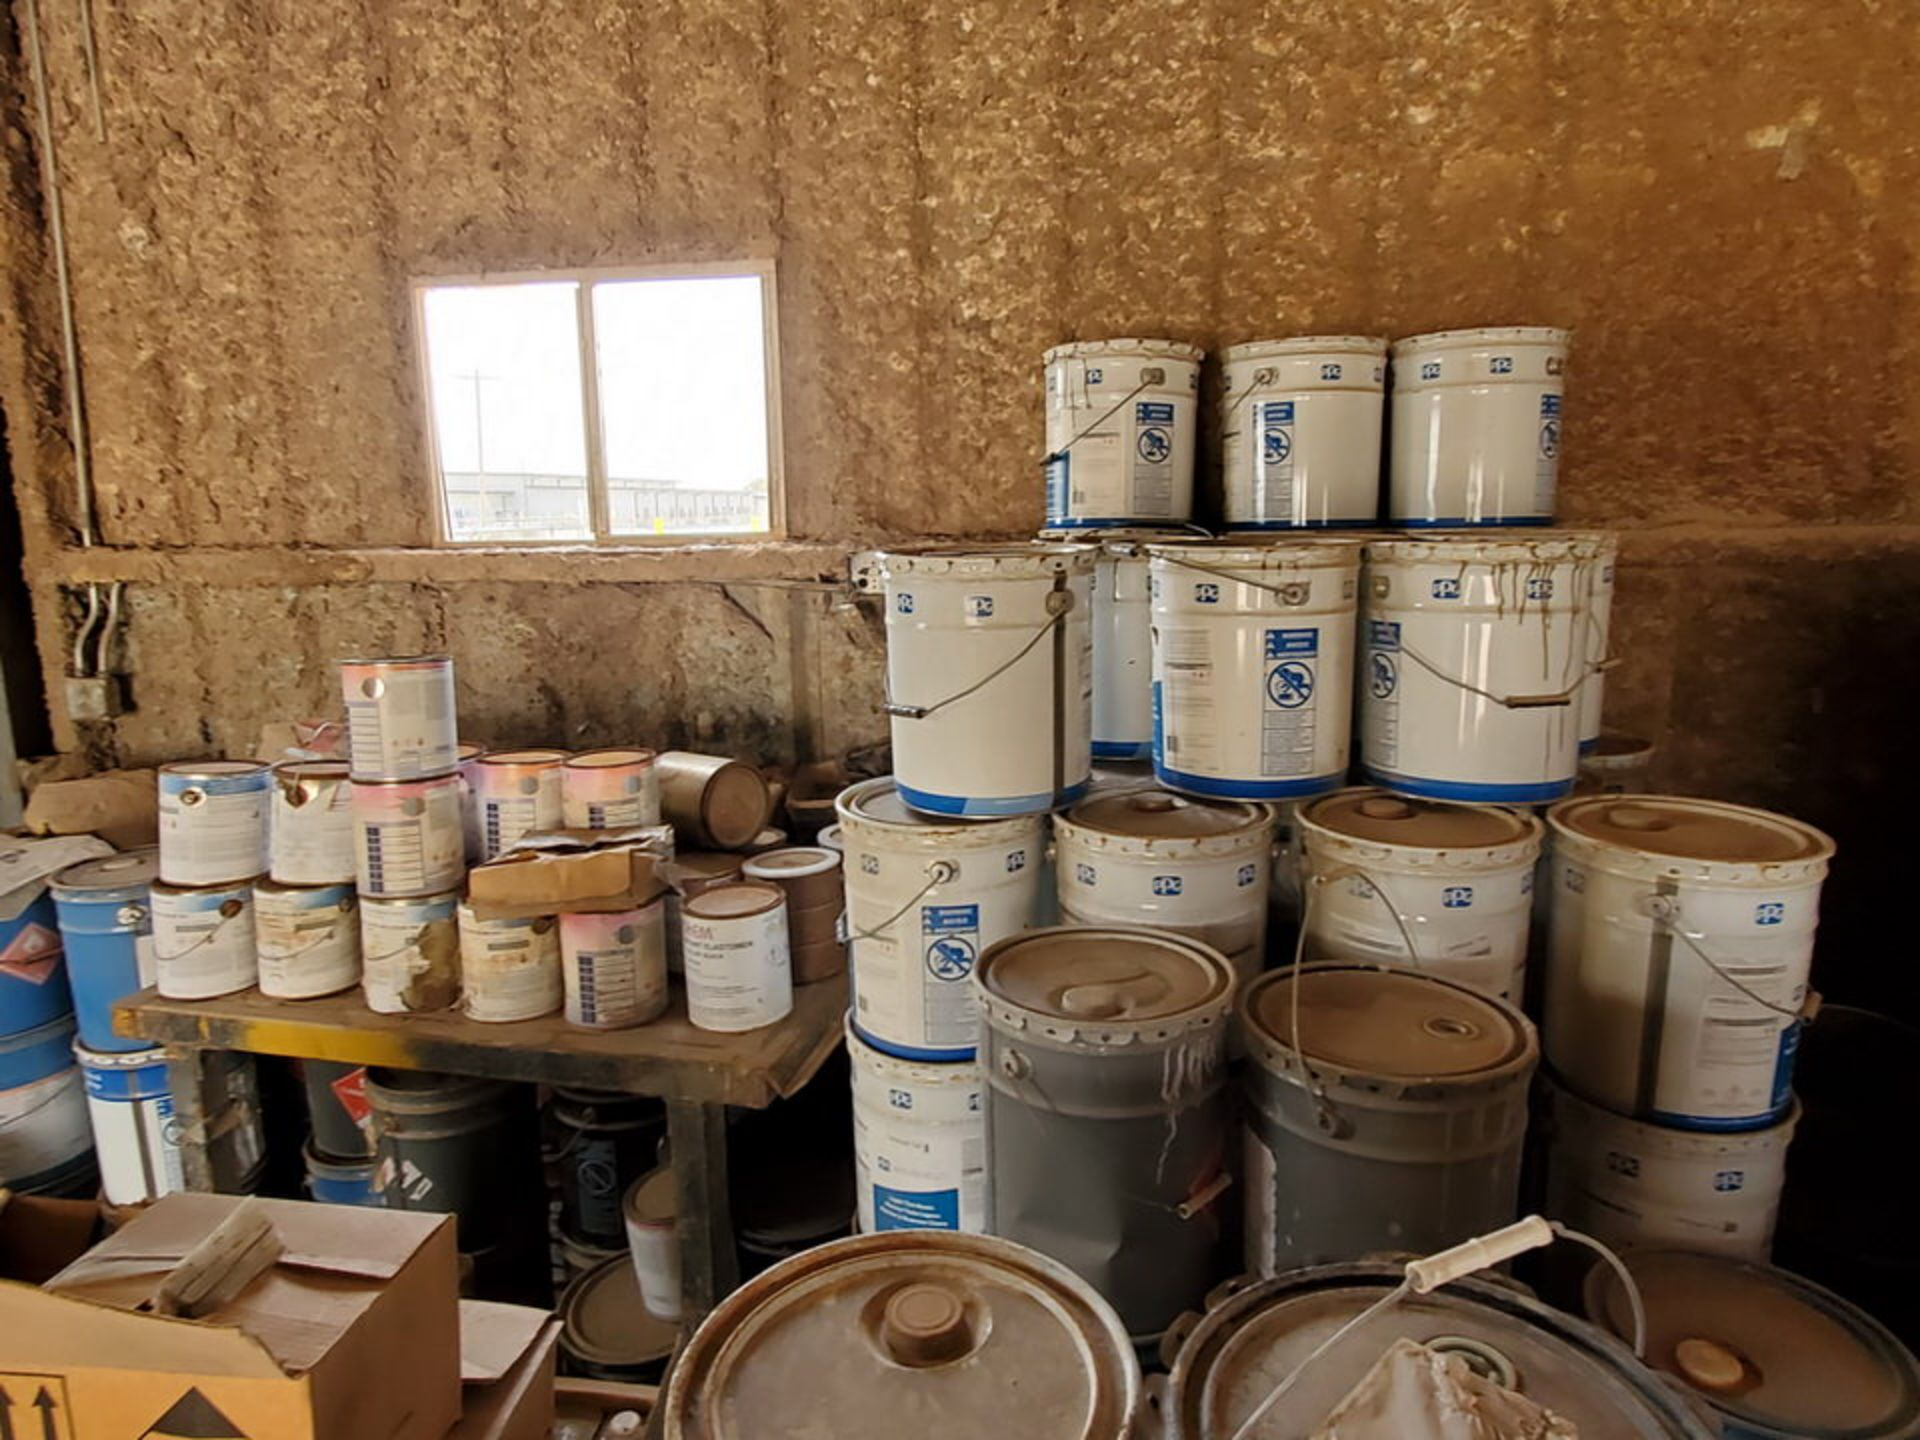 Assorted Paints & Marine Coatings Mfg's: PPG, Intl. & Other - Image 9 of 10